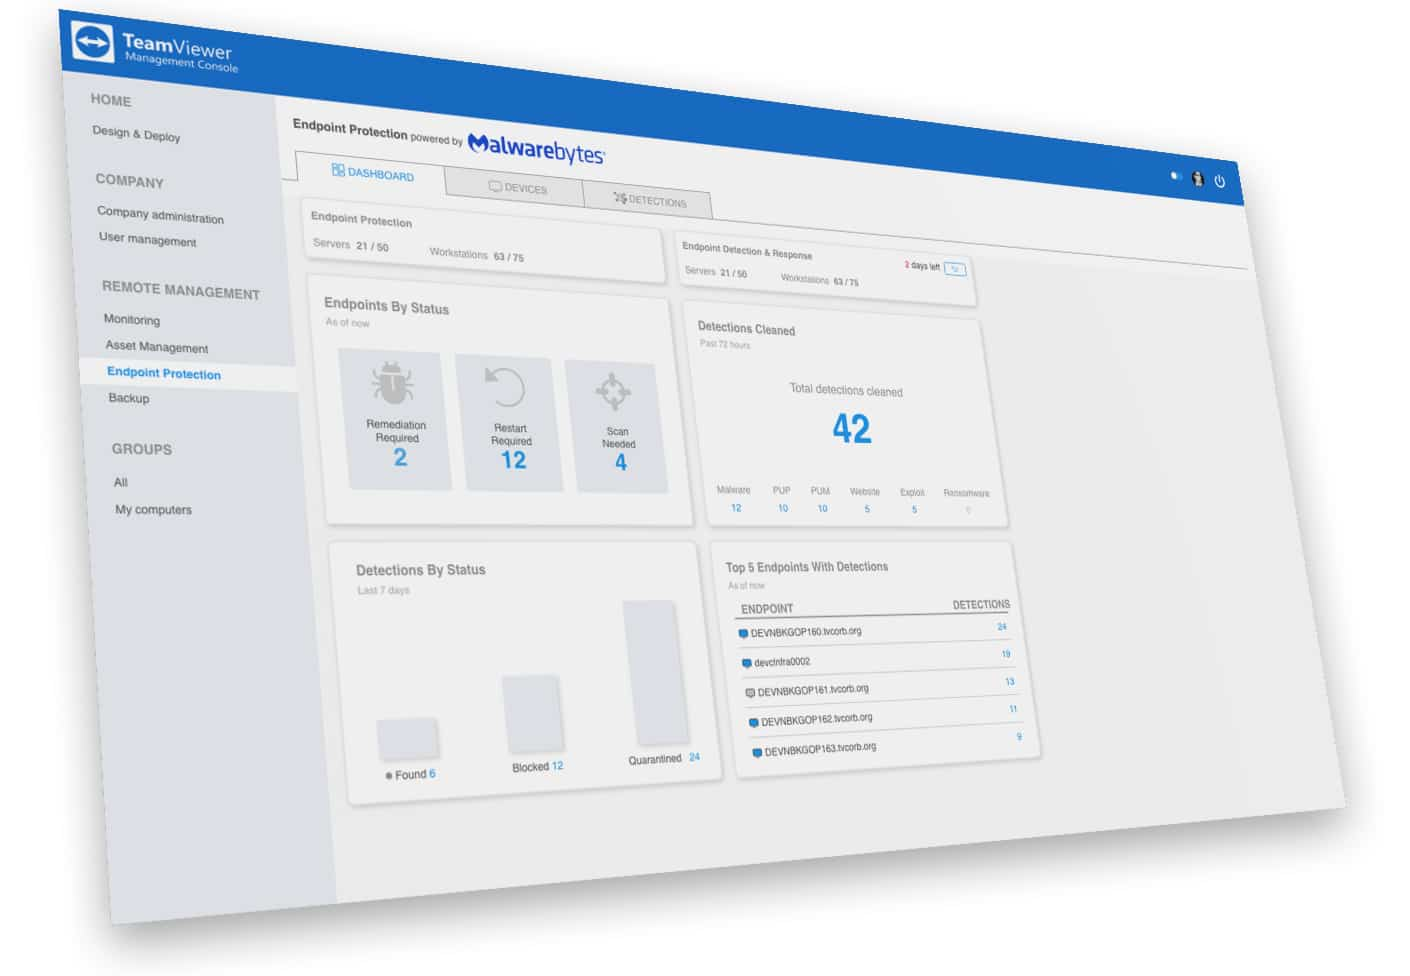 teamviewer malwarebytes endpoint protection dashboard